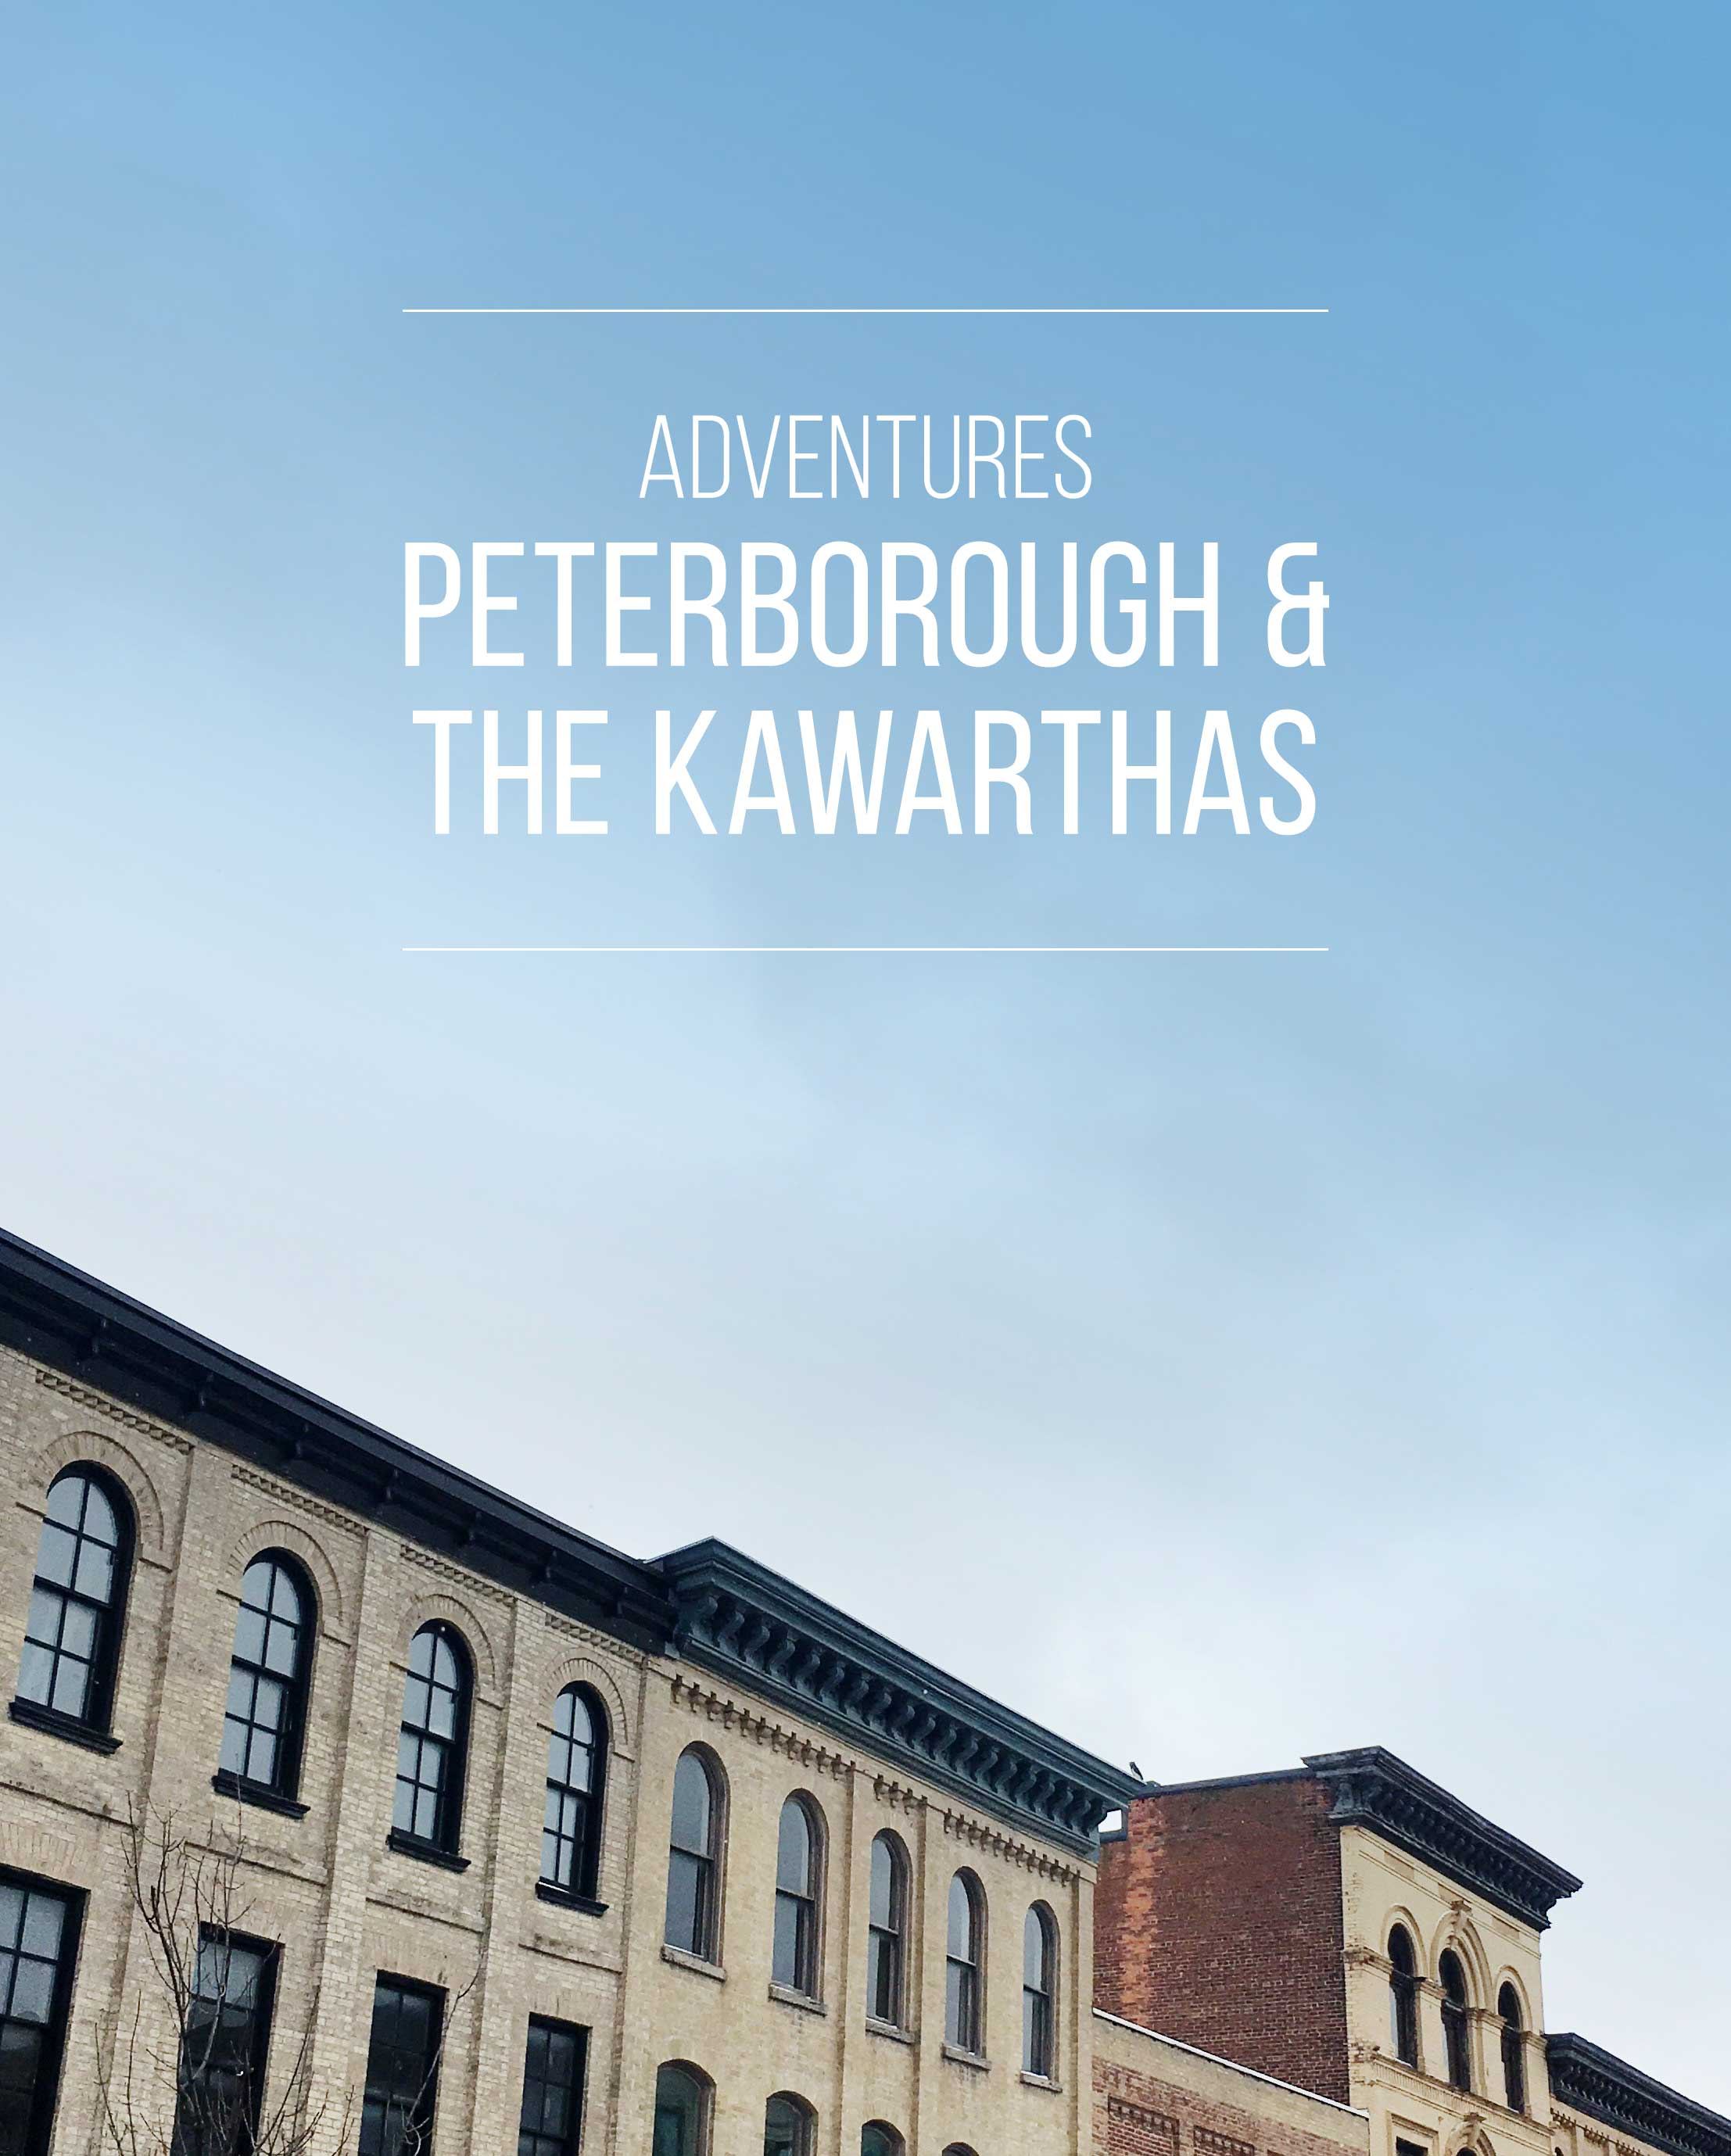 Adventures | A Guide to Peterborough and The Kawarthas